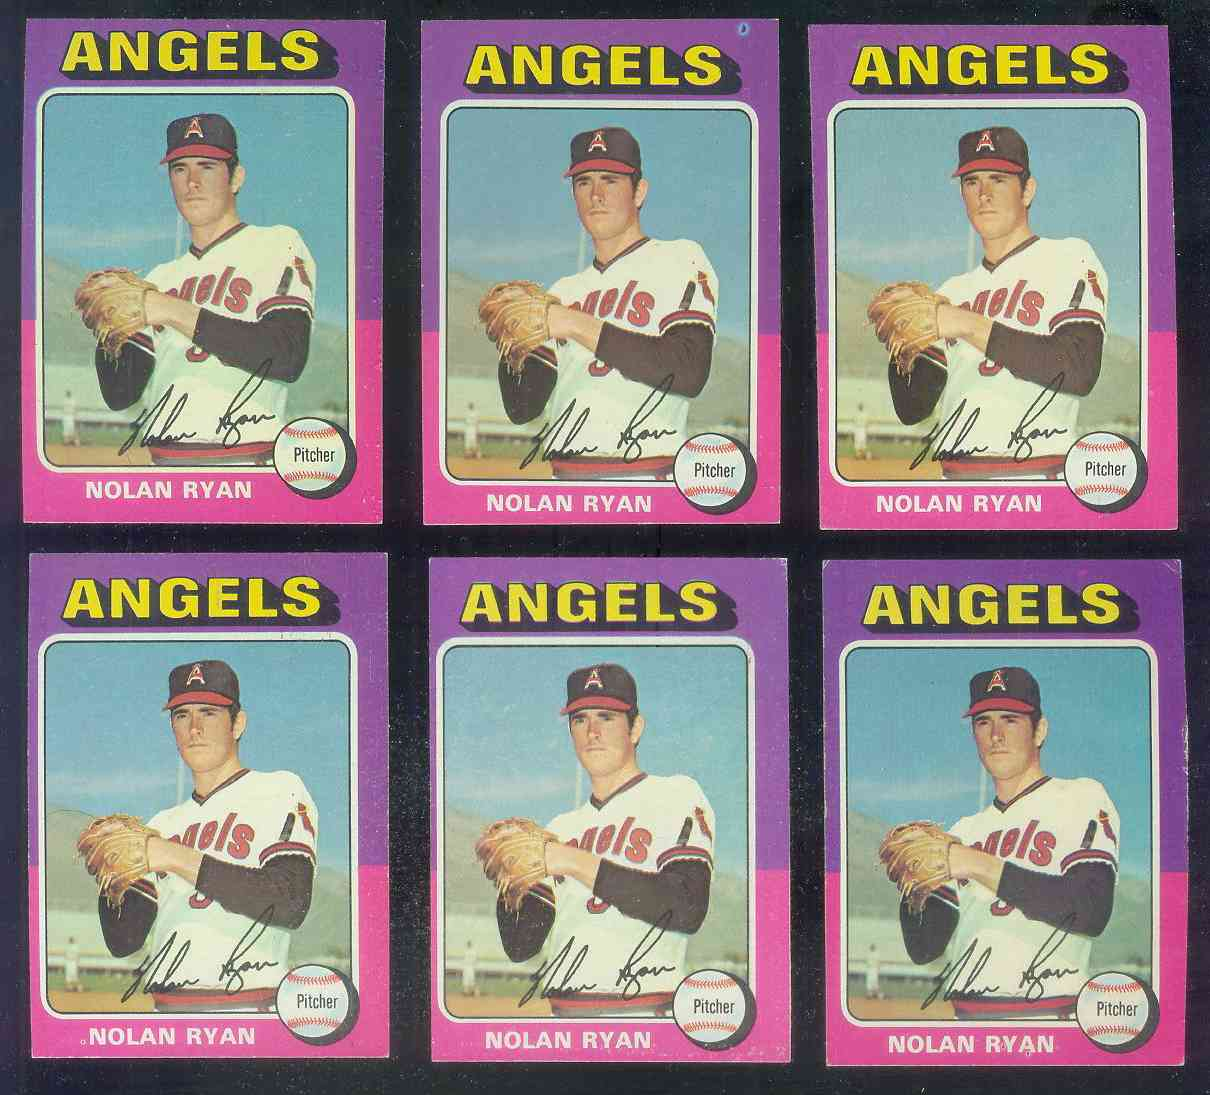 1975 Topps #500 Nolan Ryan [#b] (Angels) Baseball cards value